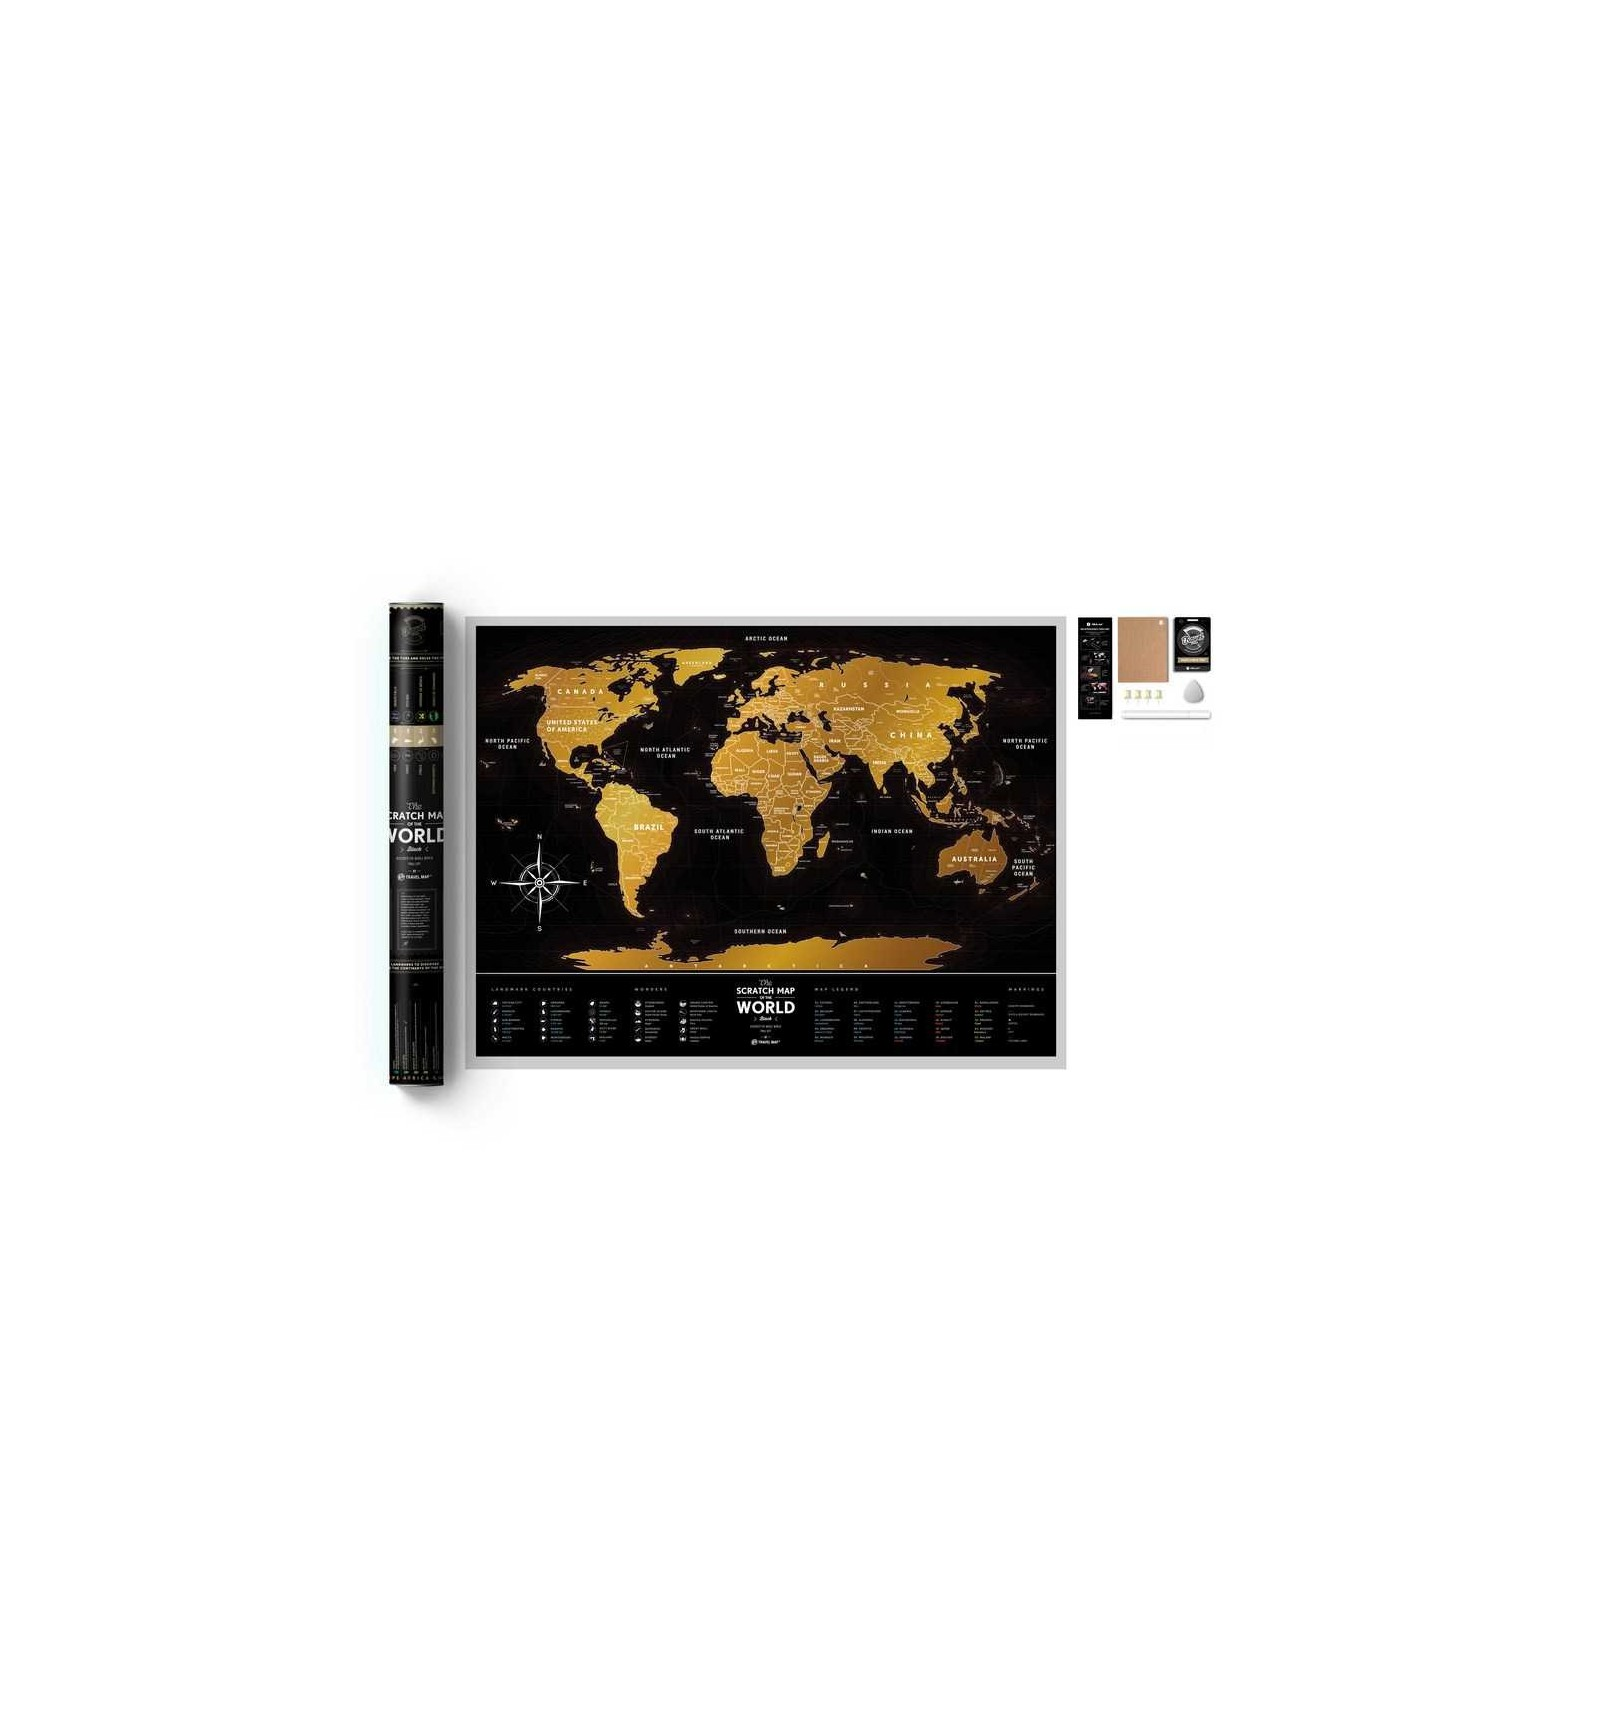 Scratch world map travel map black world 1dea in kiev gift shop scratch world map travel map black world loading zoom gumiabroncs